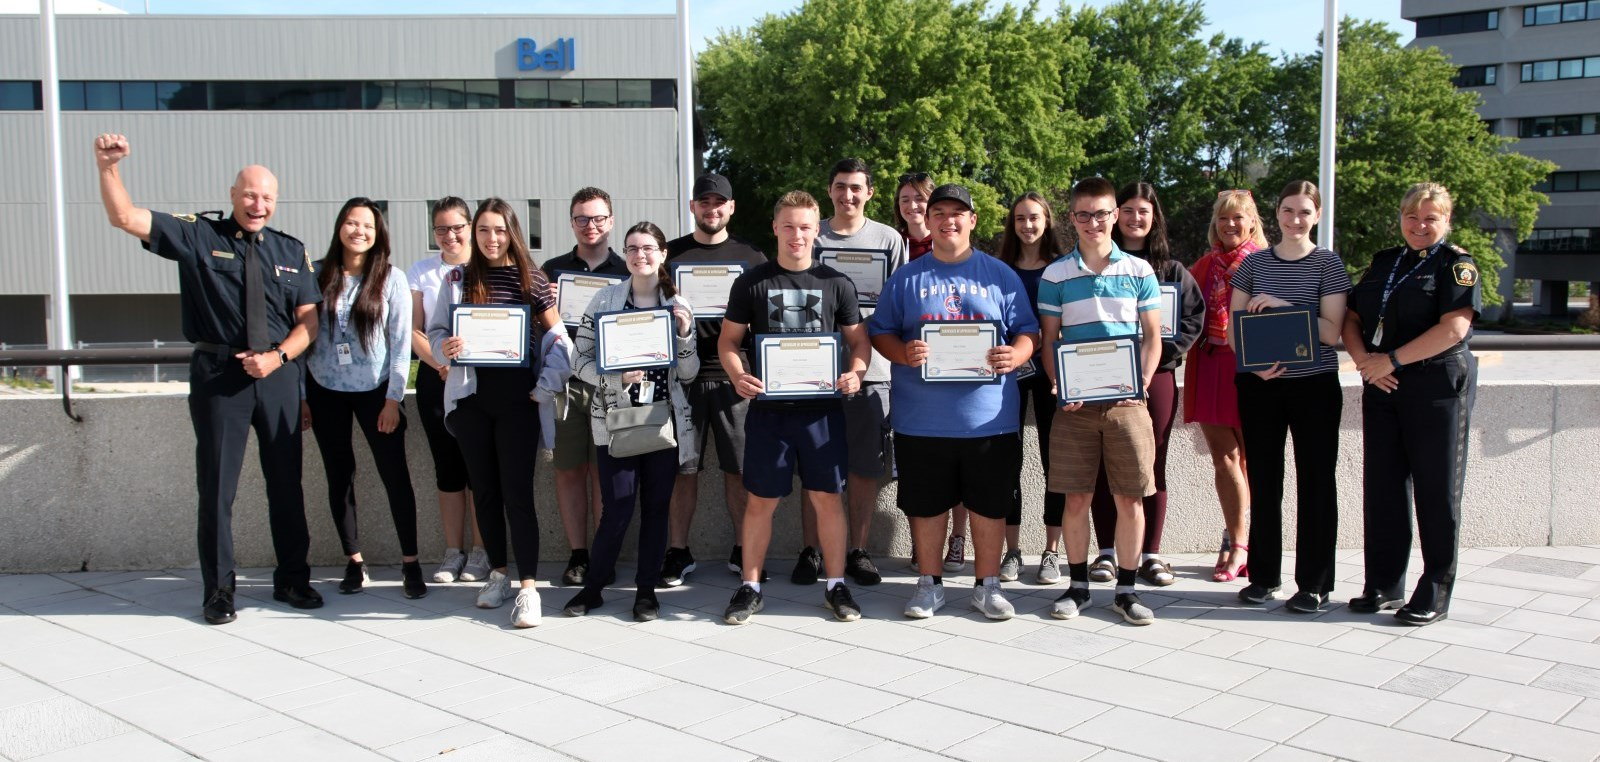 summer students standing with their completion certificates